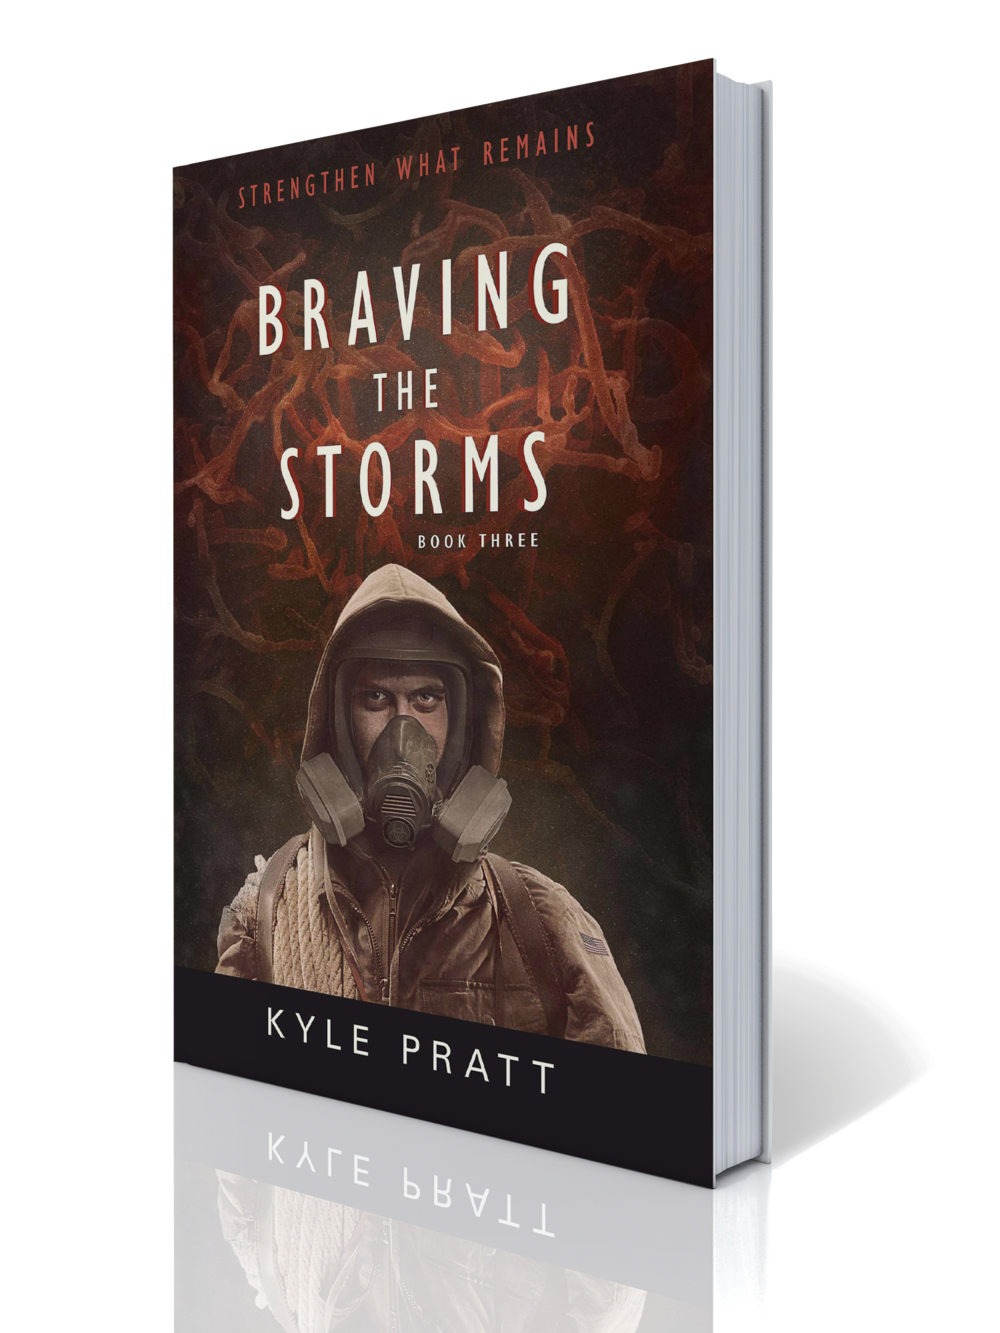 Braving the Storms by Kyle Pratt